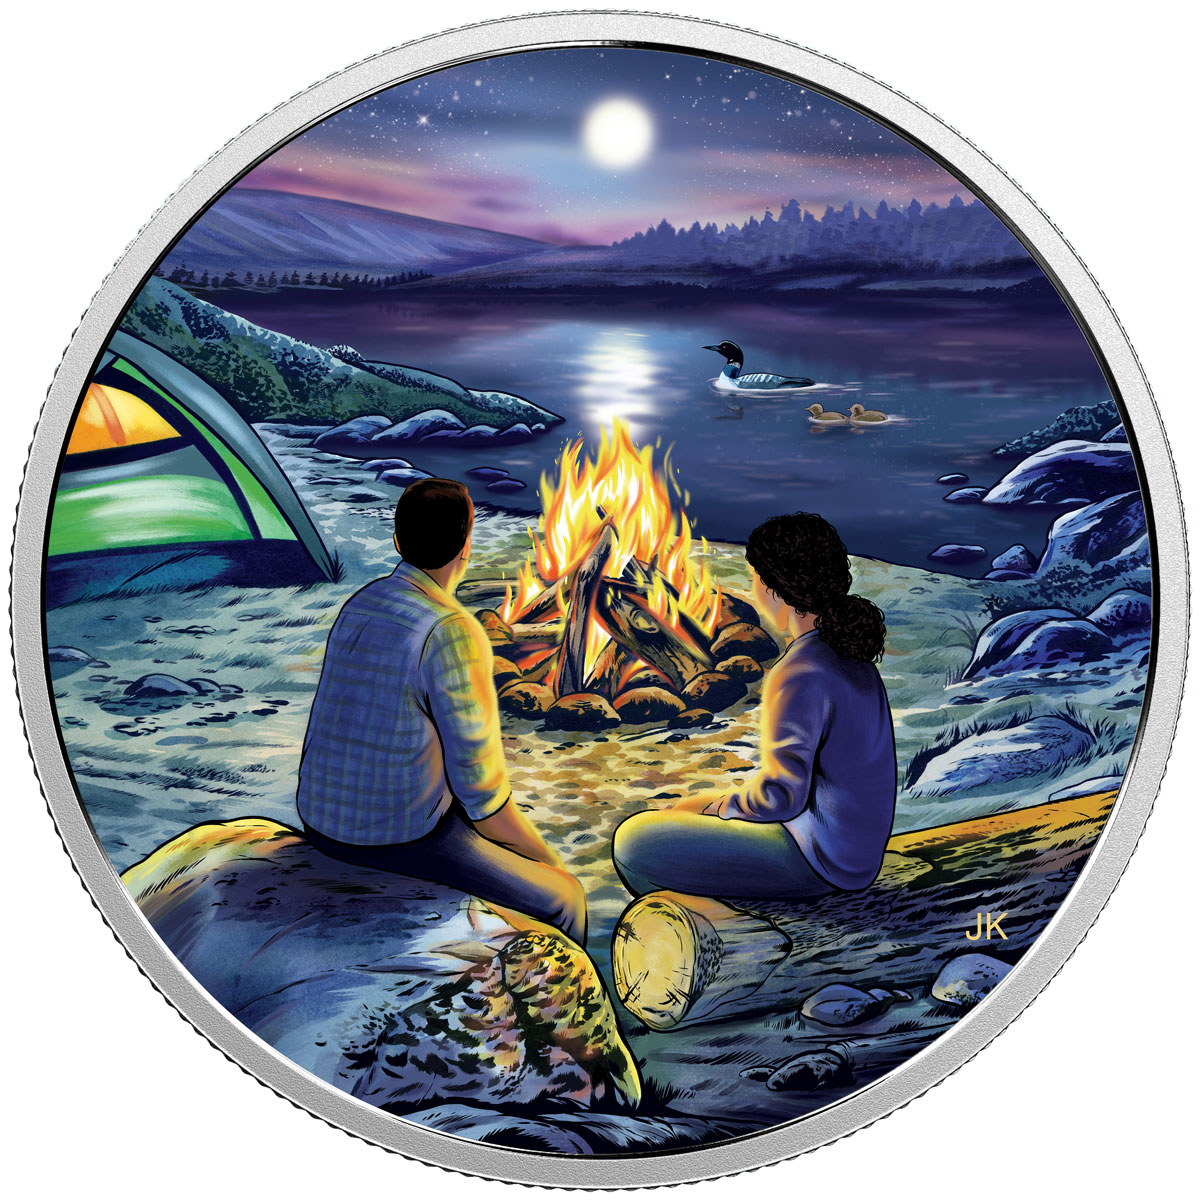 2017 Canada Great Canadian Outdoors - Around the Campfire 3/4 oz Silver Colorized Glow in the Dark Proof $15 Coin GEM Proof OGP